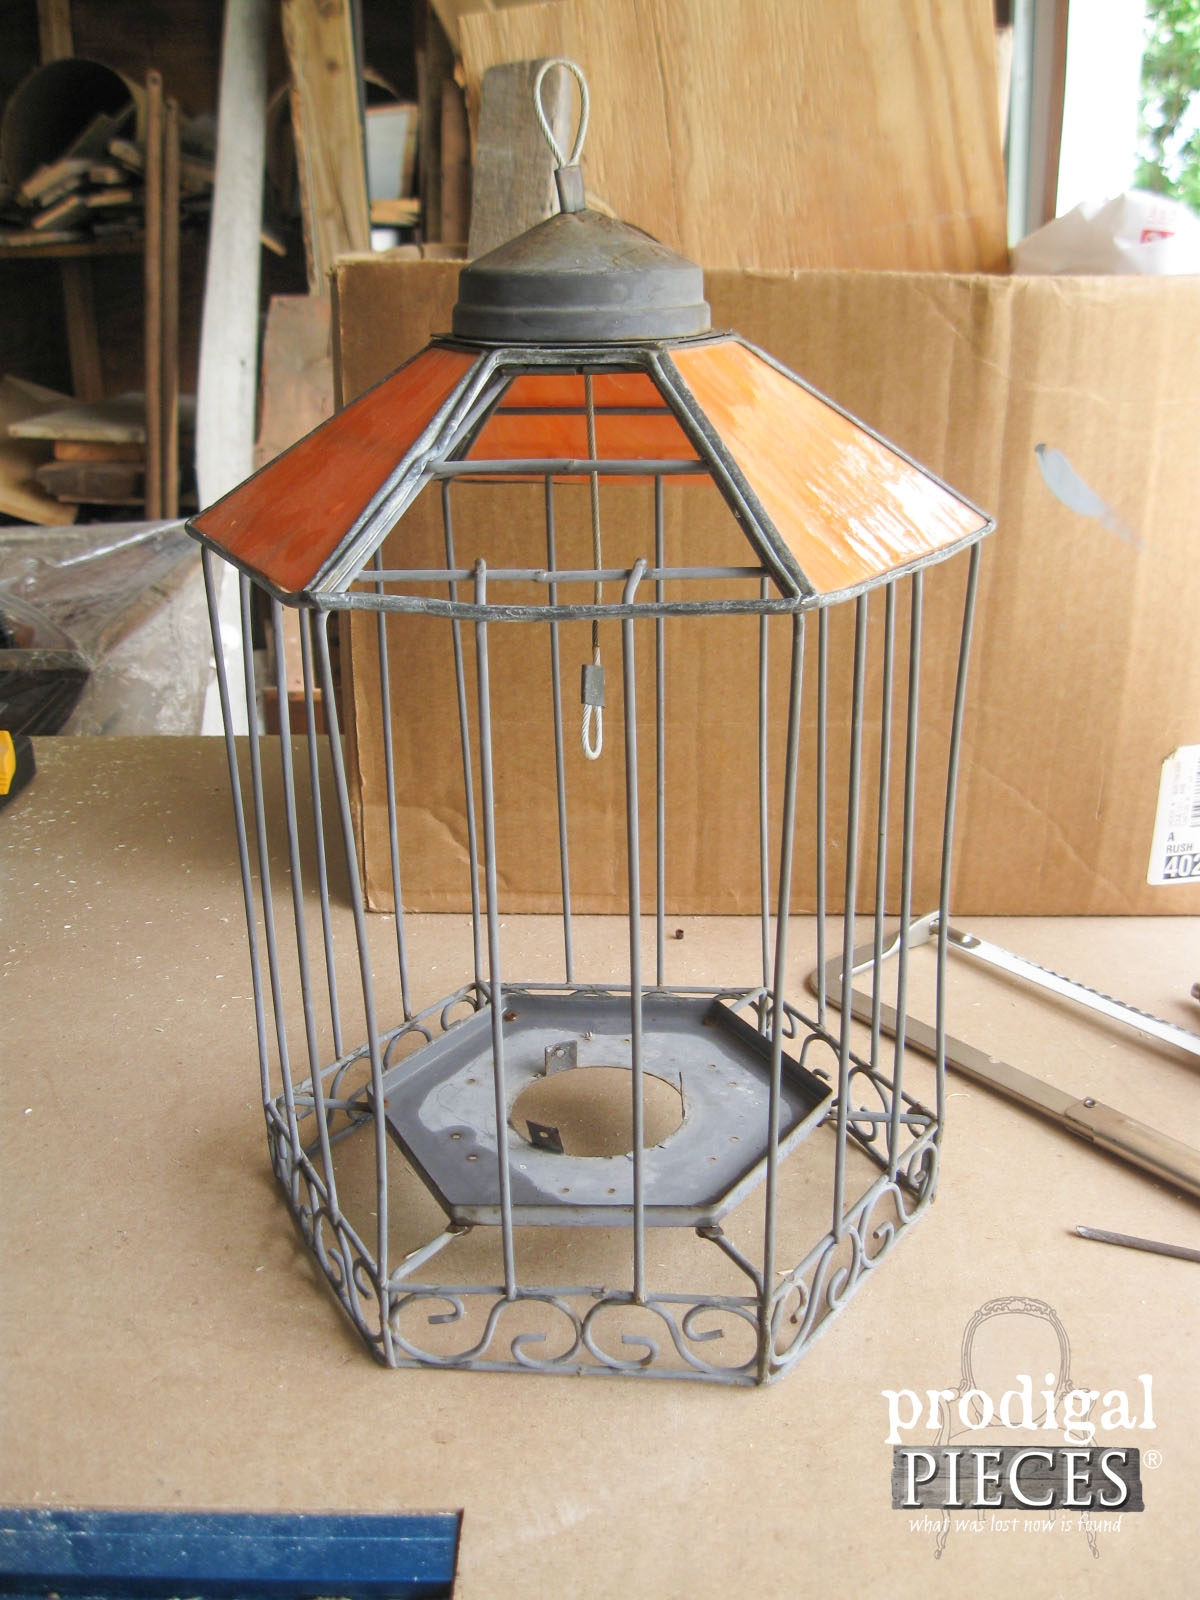 Broken Stained Glass Bird Feeder Before Repurposing | Prodigal Pieces | www.prodigalpieces.com